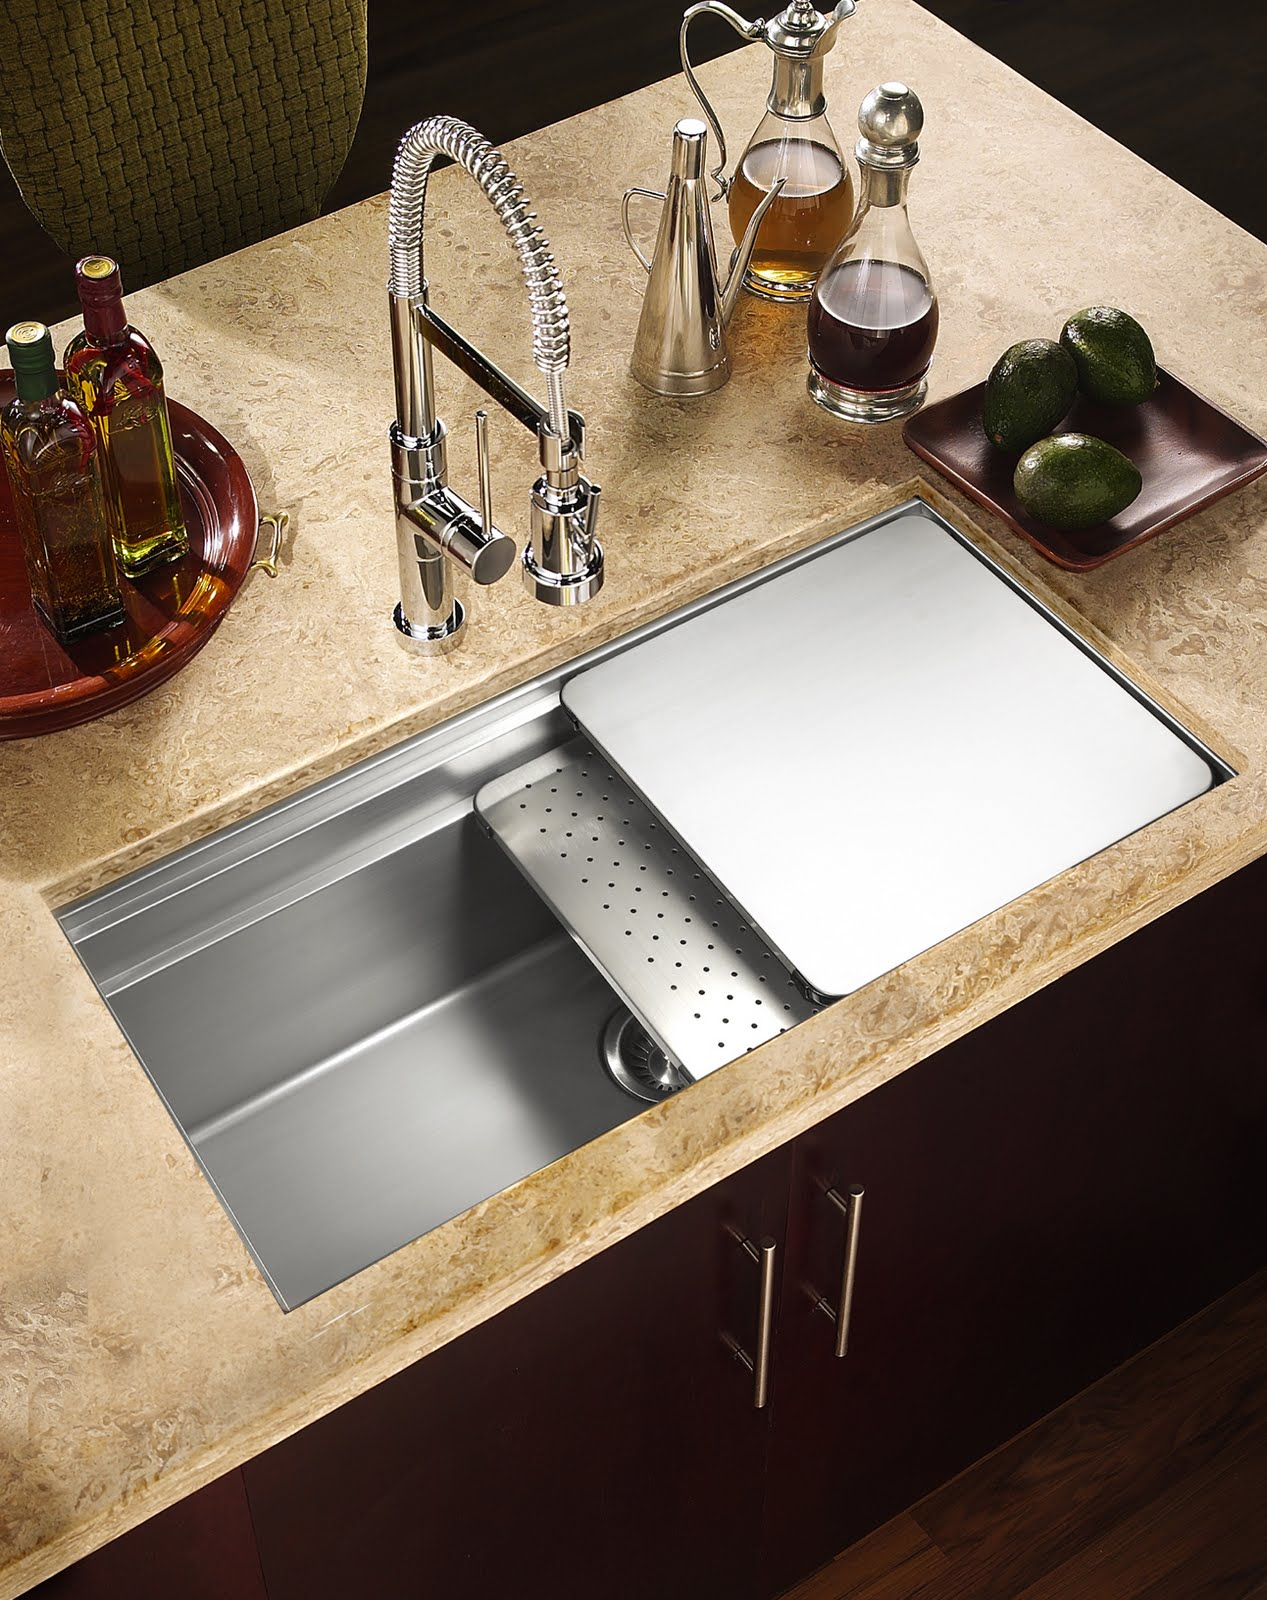 best kitchen sinks and taps find this pin and more on kitchen oil kitceb sink cabinet